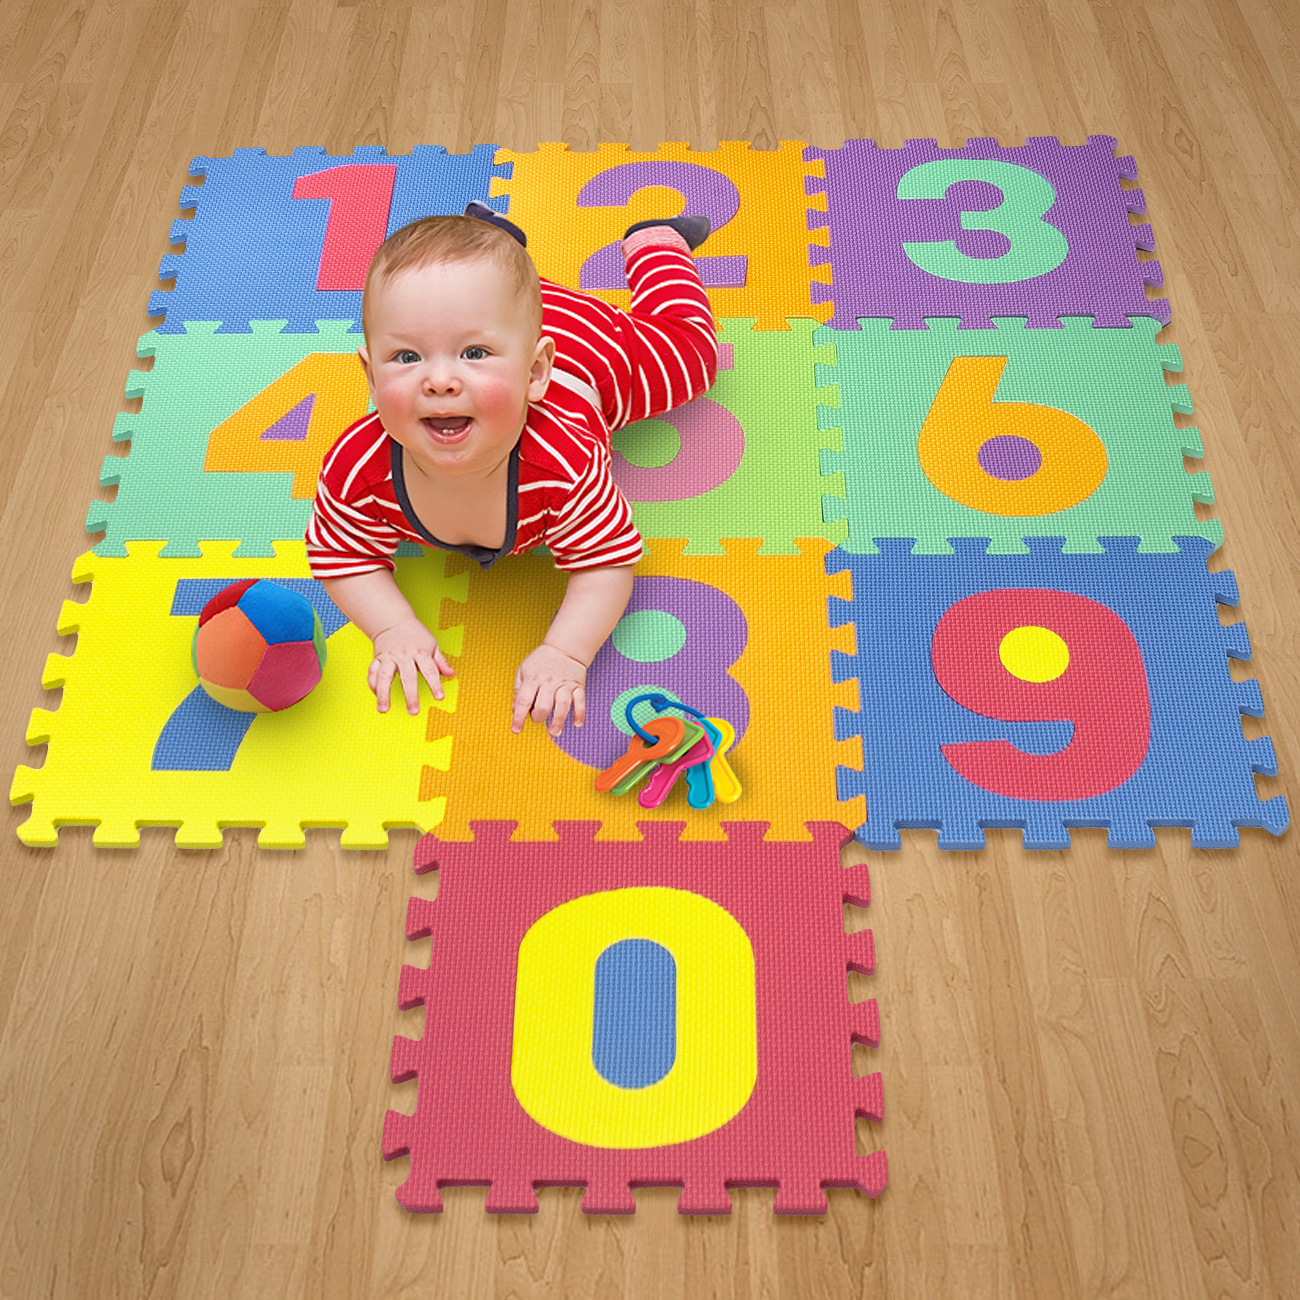 Matney Foam Mat Of Number Puzzle Pieces Great For Kids To Learn